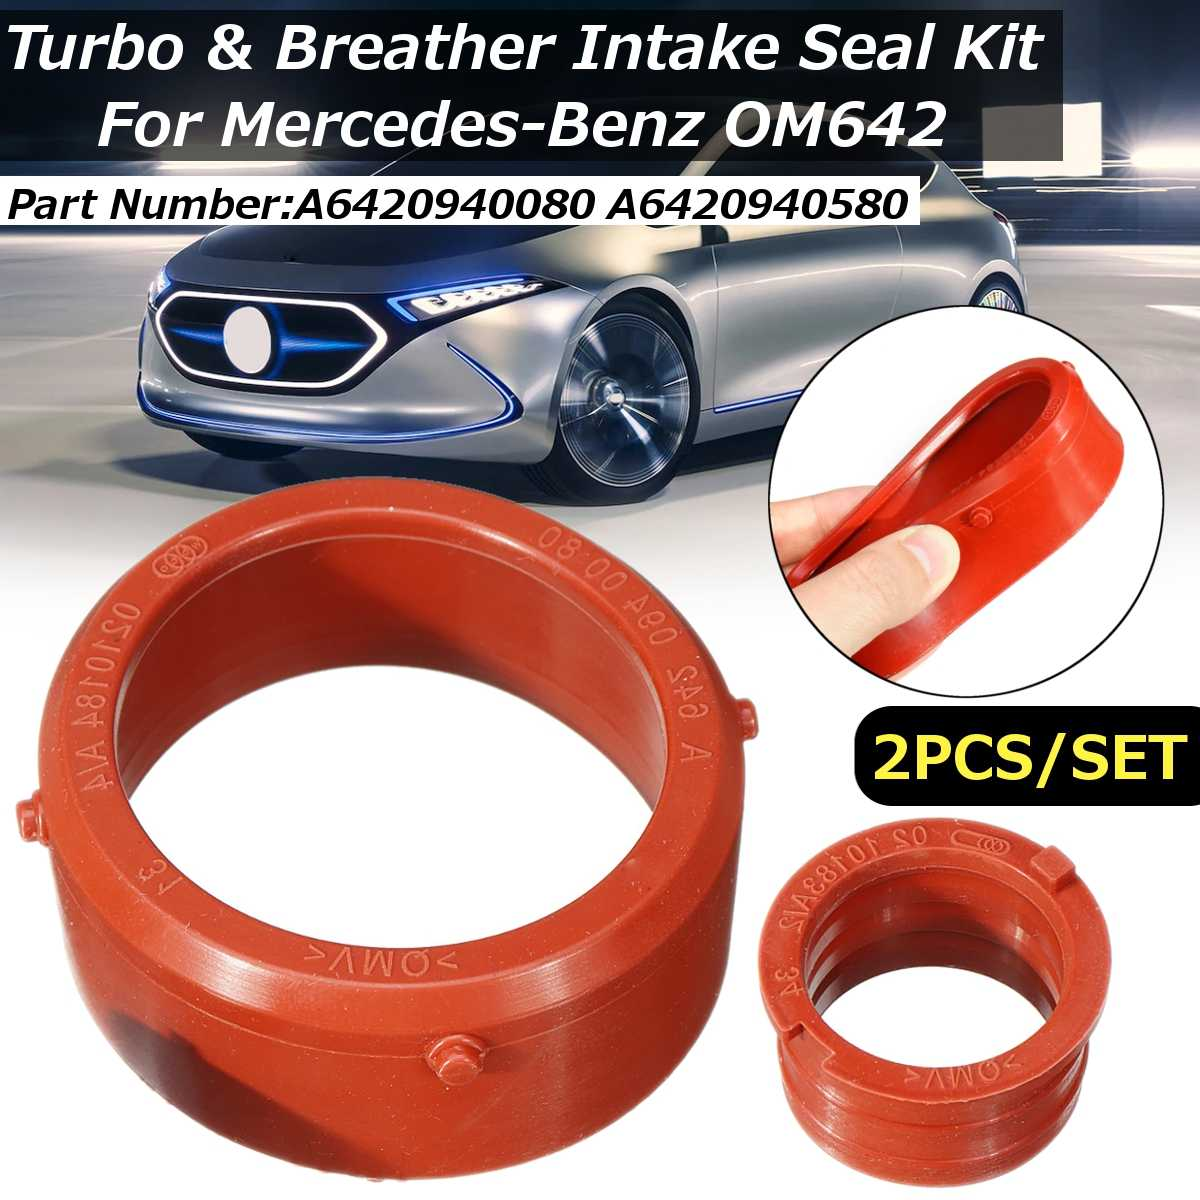 2pcs Car engine A6420940080 Turbo Intake Seal & Engine Breather Seal Kit for Mercedes-Benz <font><b>OM642</b></font> Engines Engine Accessories image